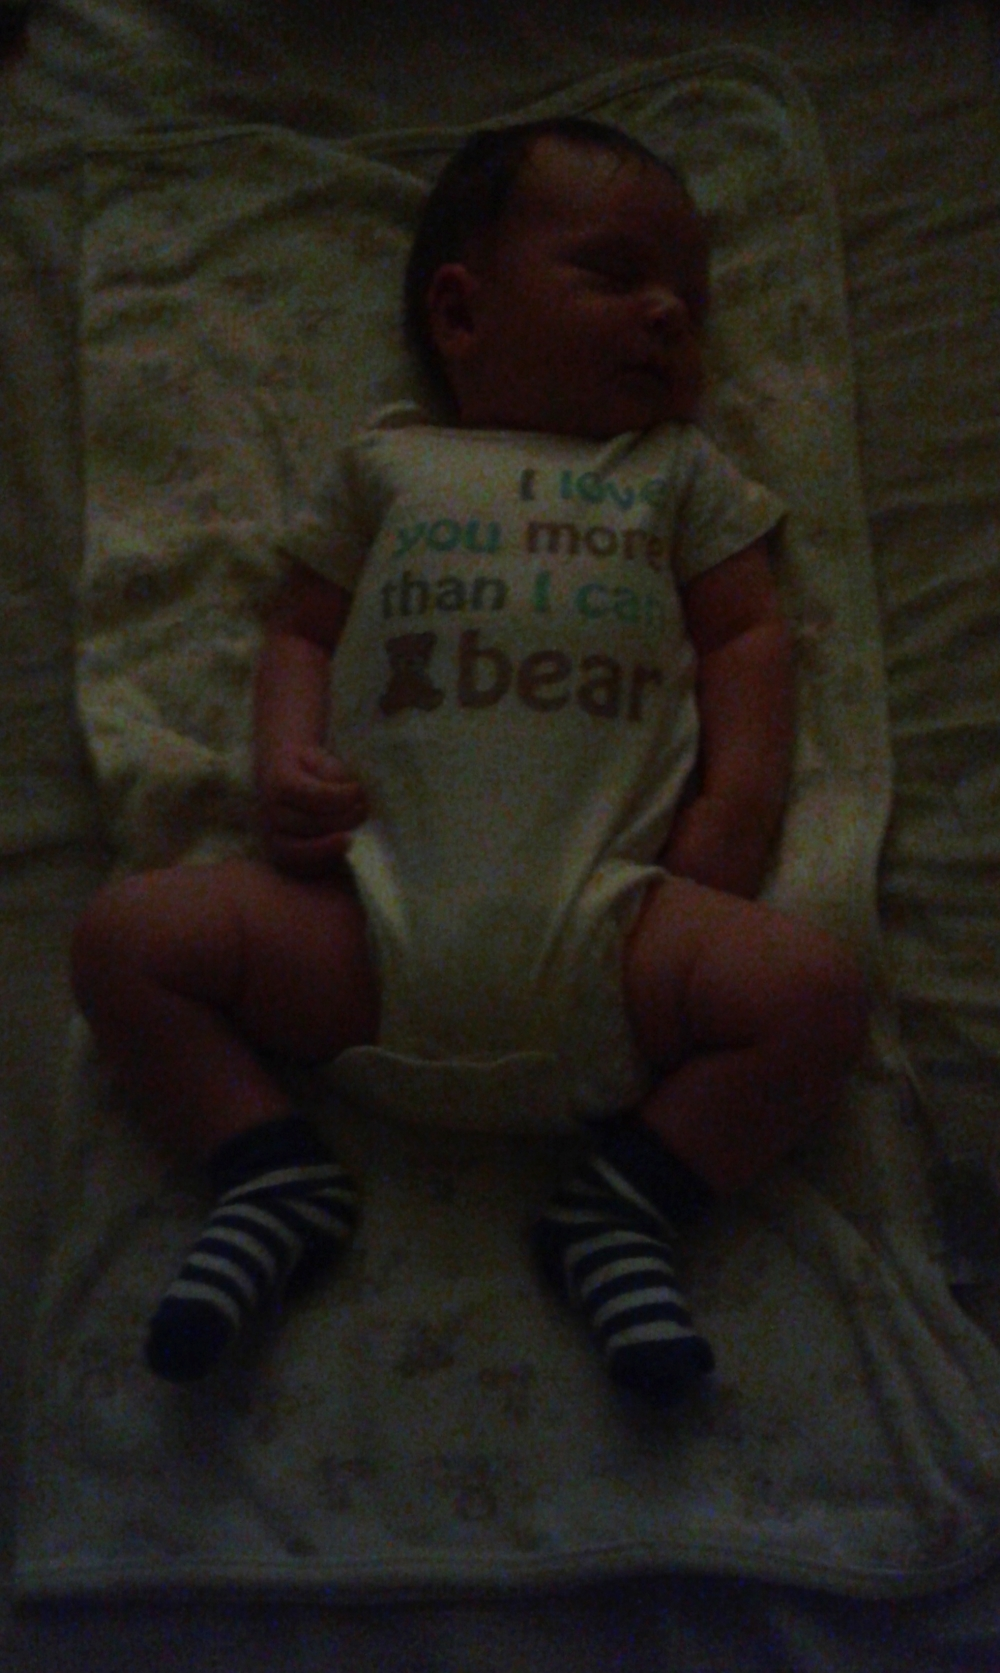 I love you more than I can bear: Baby Vee at 4 weeks 1 day, 8/31/15 at 10:34pm